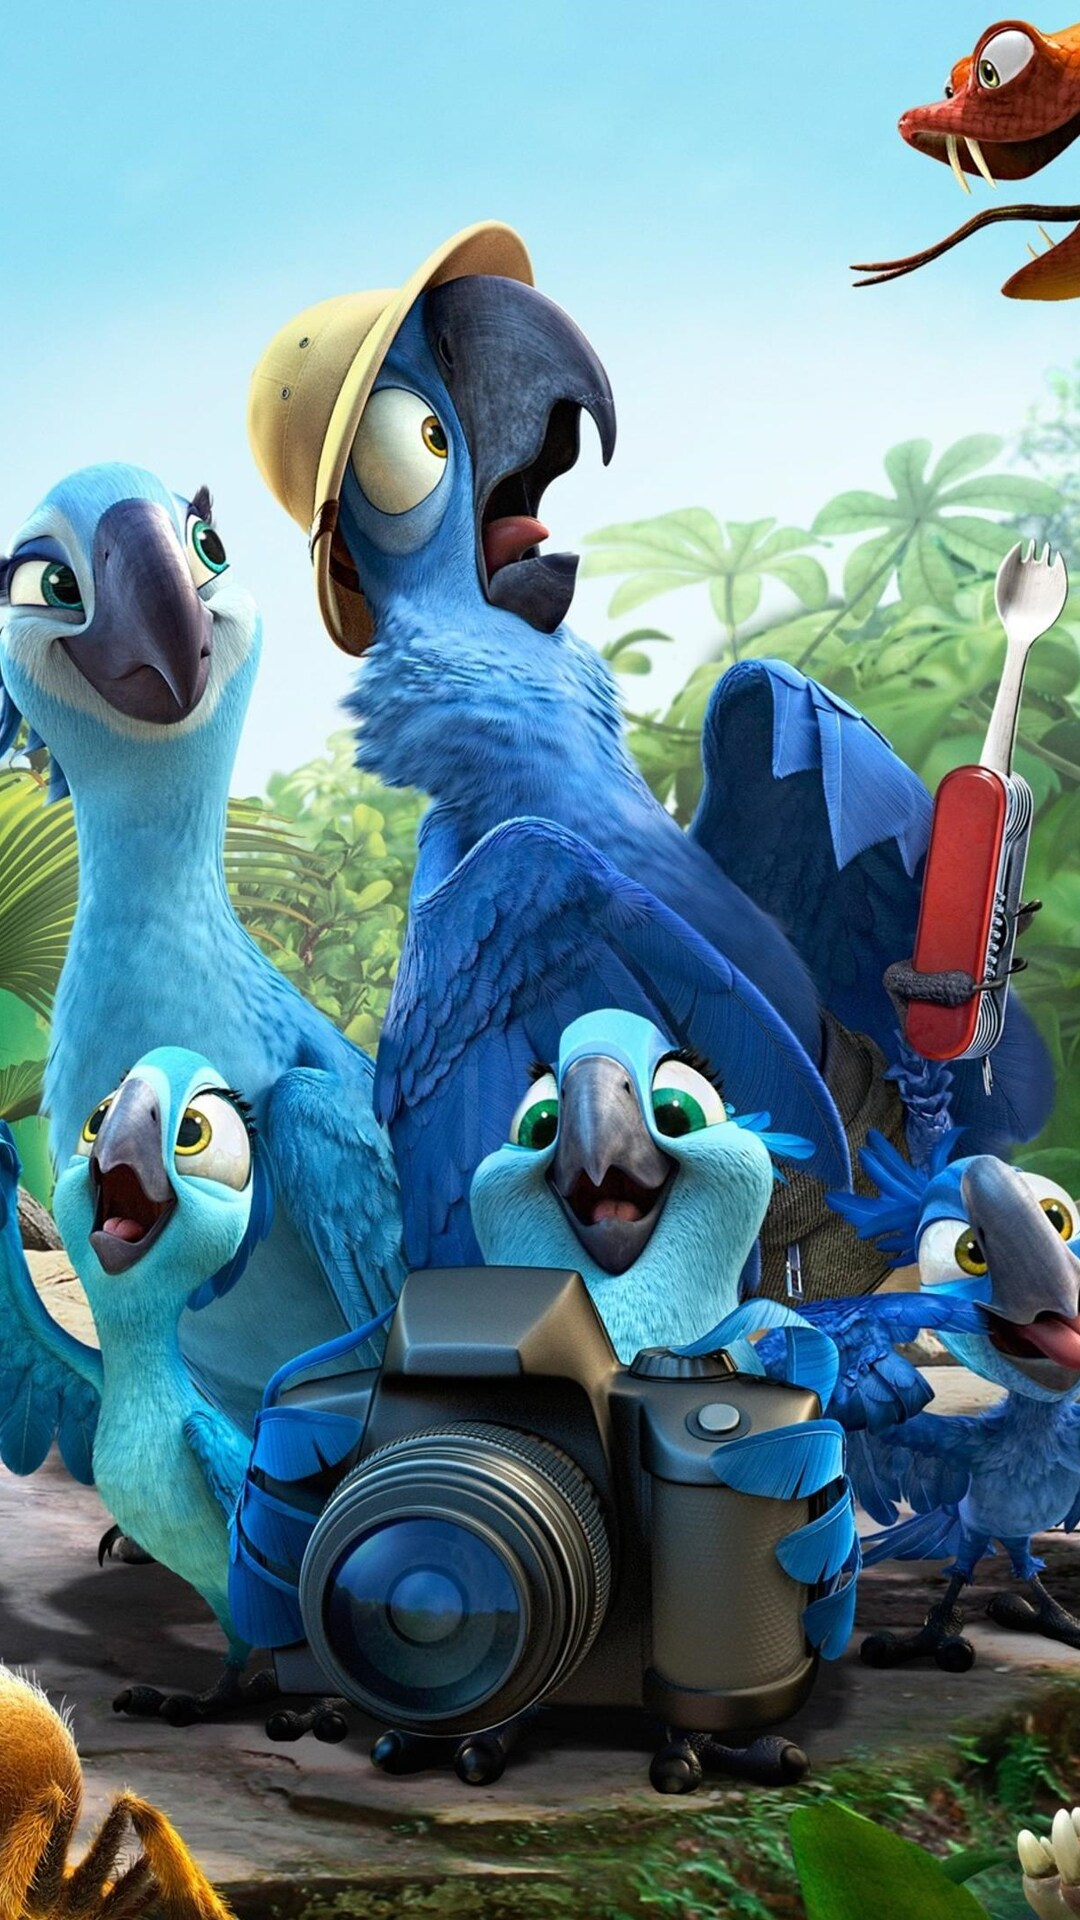 1080x1920 rio 2 movie hd iphone 7,6s,6 plus, pixel xl ,one plus 3,3t